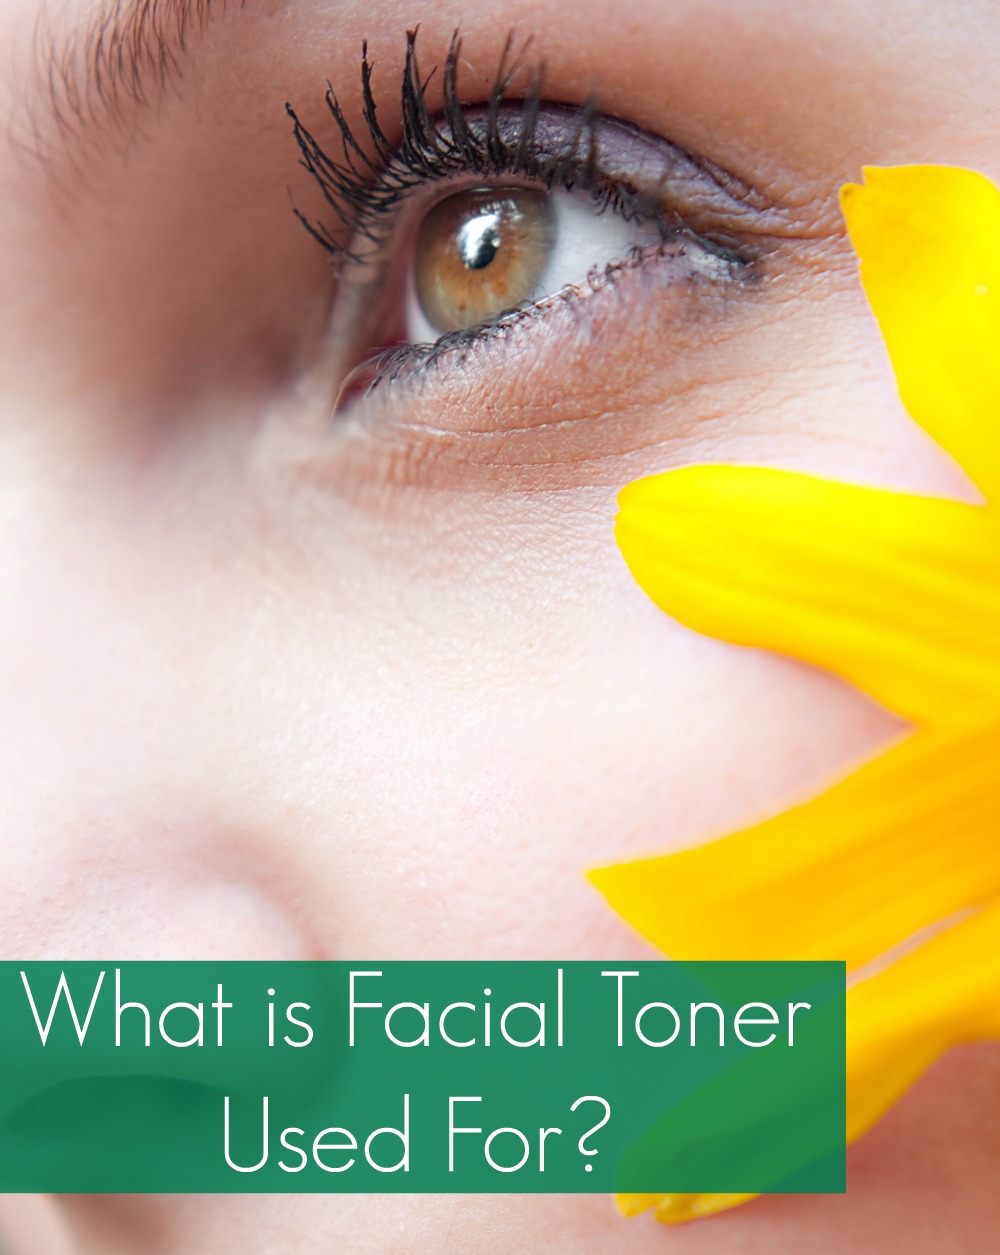 What Is Facial Toner Used For